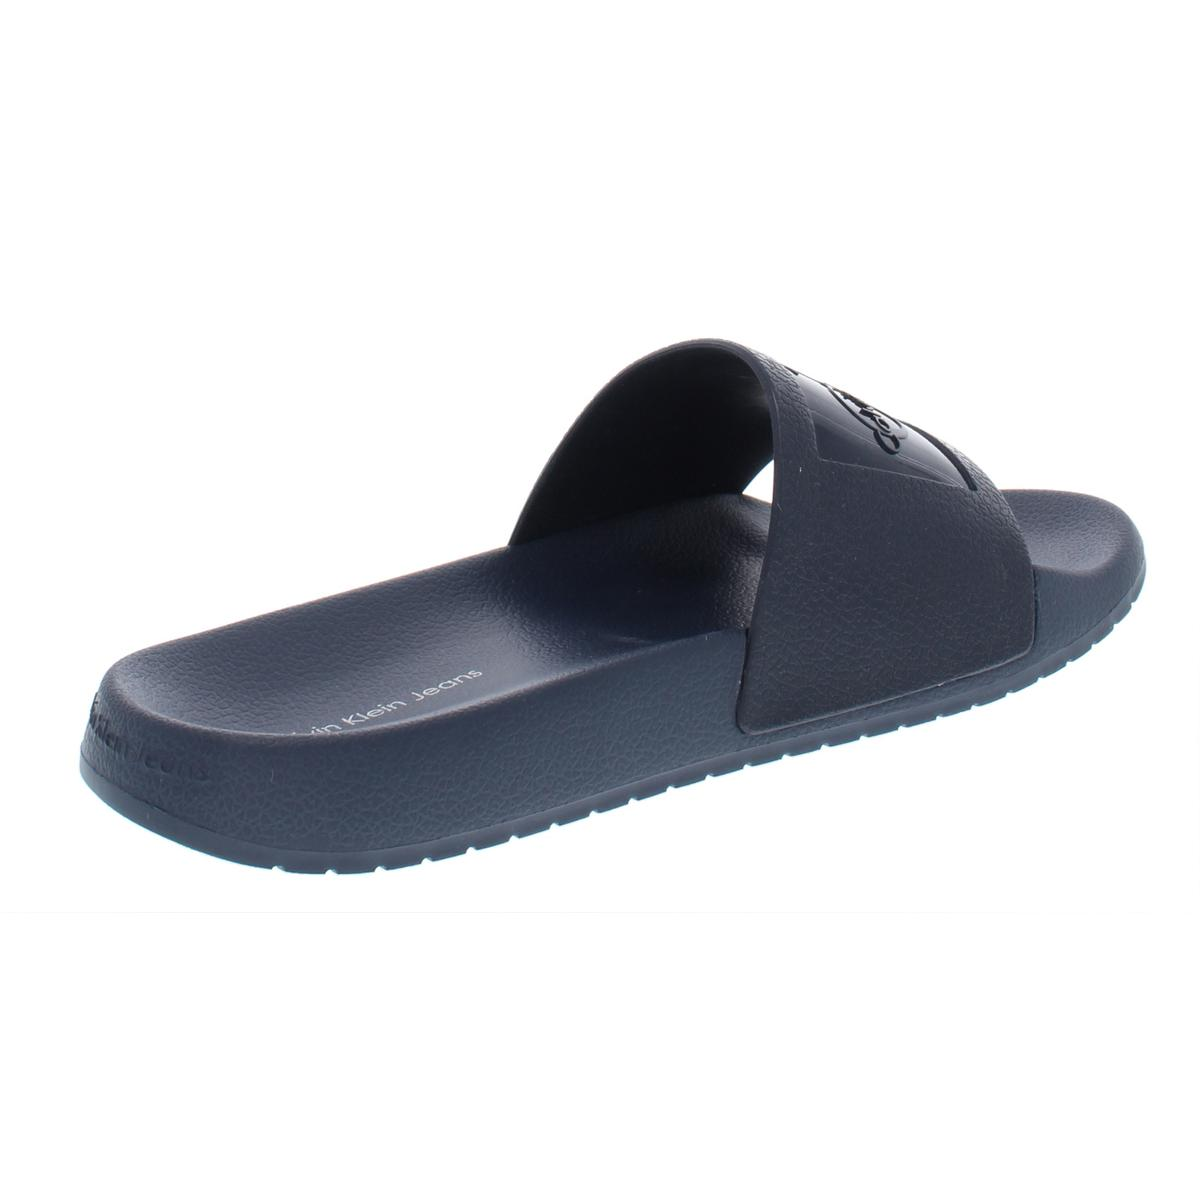 Calvin-Klein-Jeans-Womens-Christie-Embossed-Pool-Flat-Sandals-Shoes-BHFO-7722 thumbnail 4